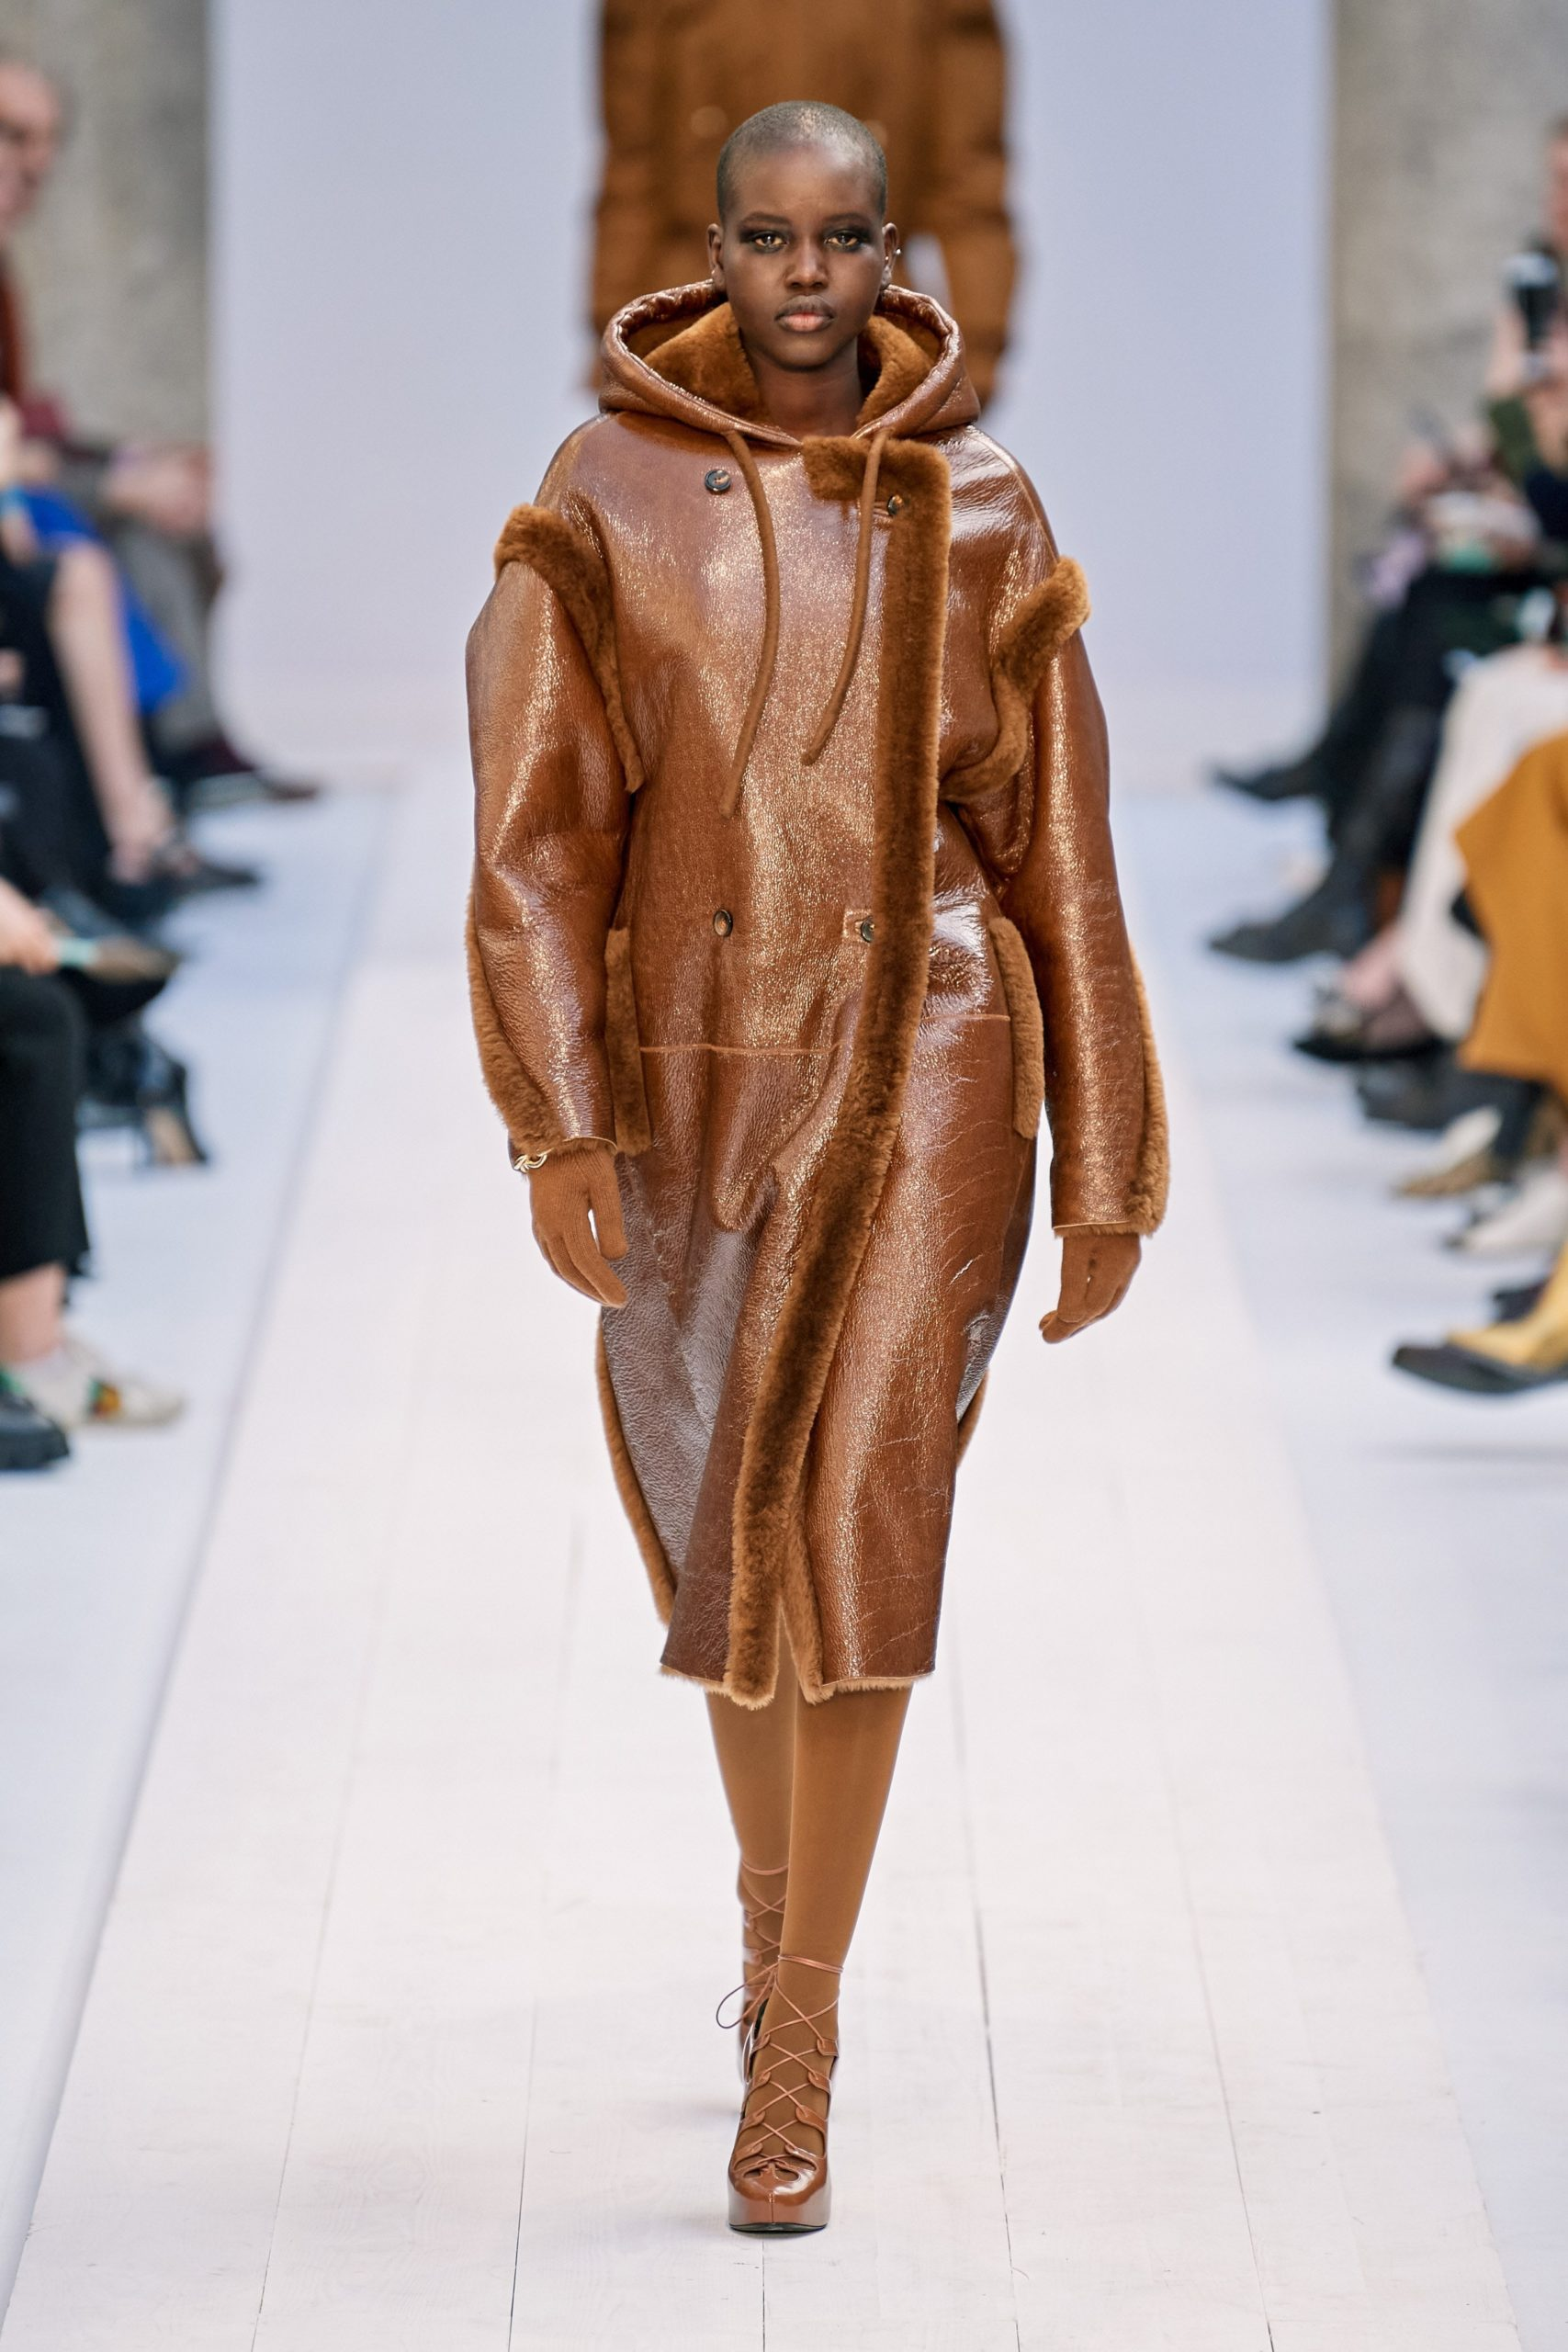 Max Mara Fall 2020 trends runway coverage Ready To Wear Vogue caramel monochrome